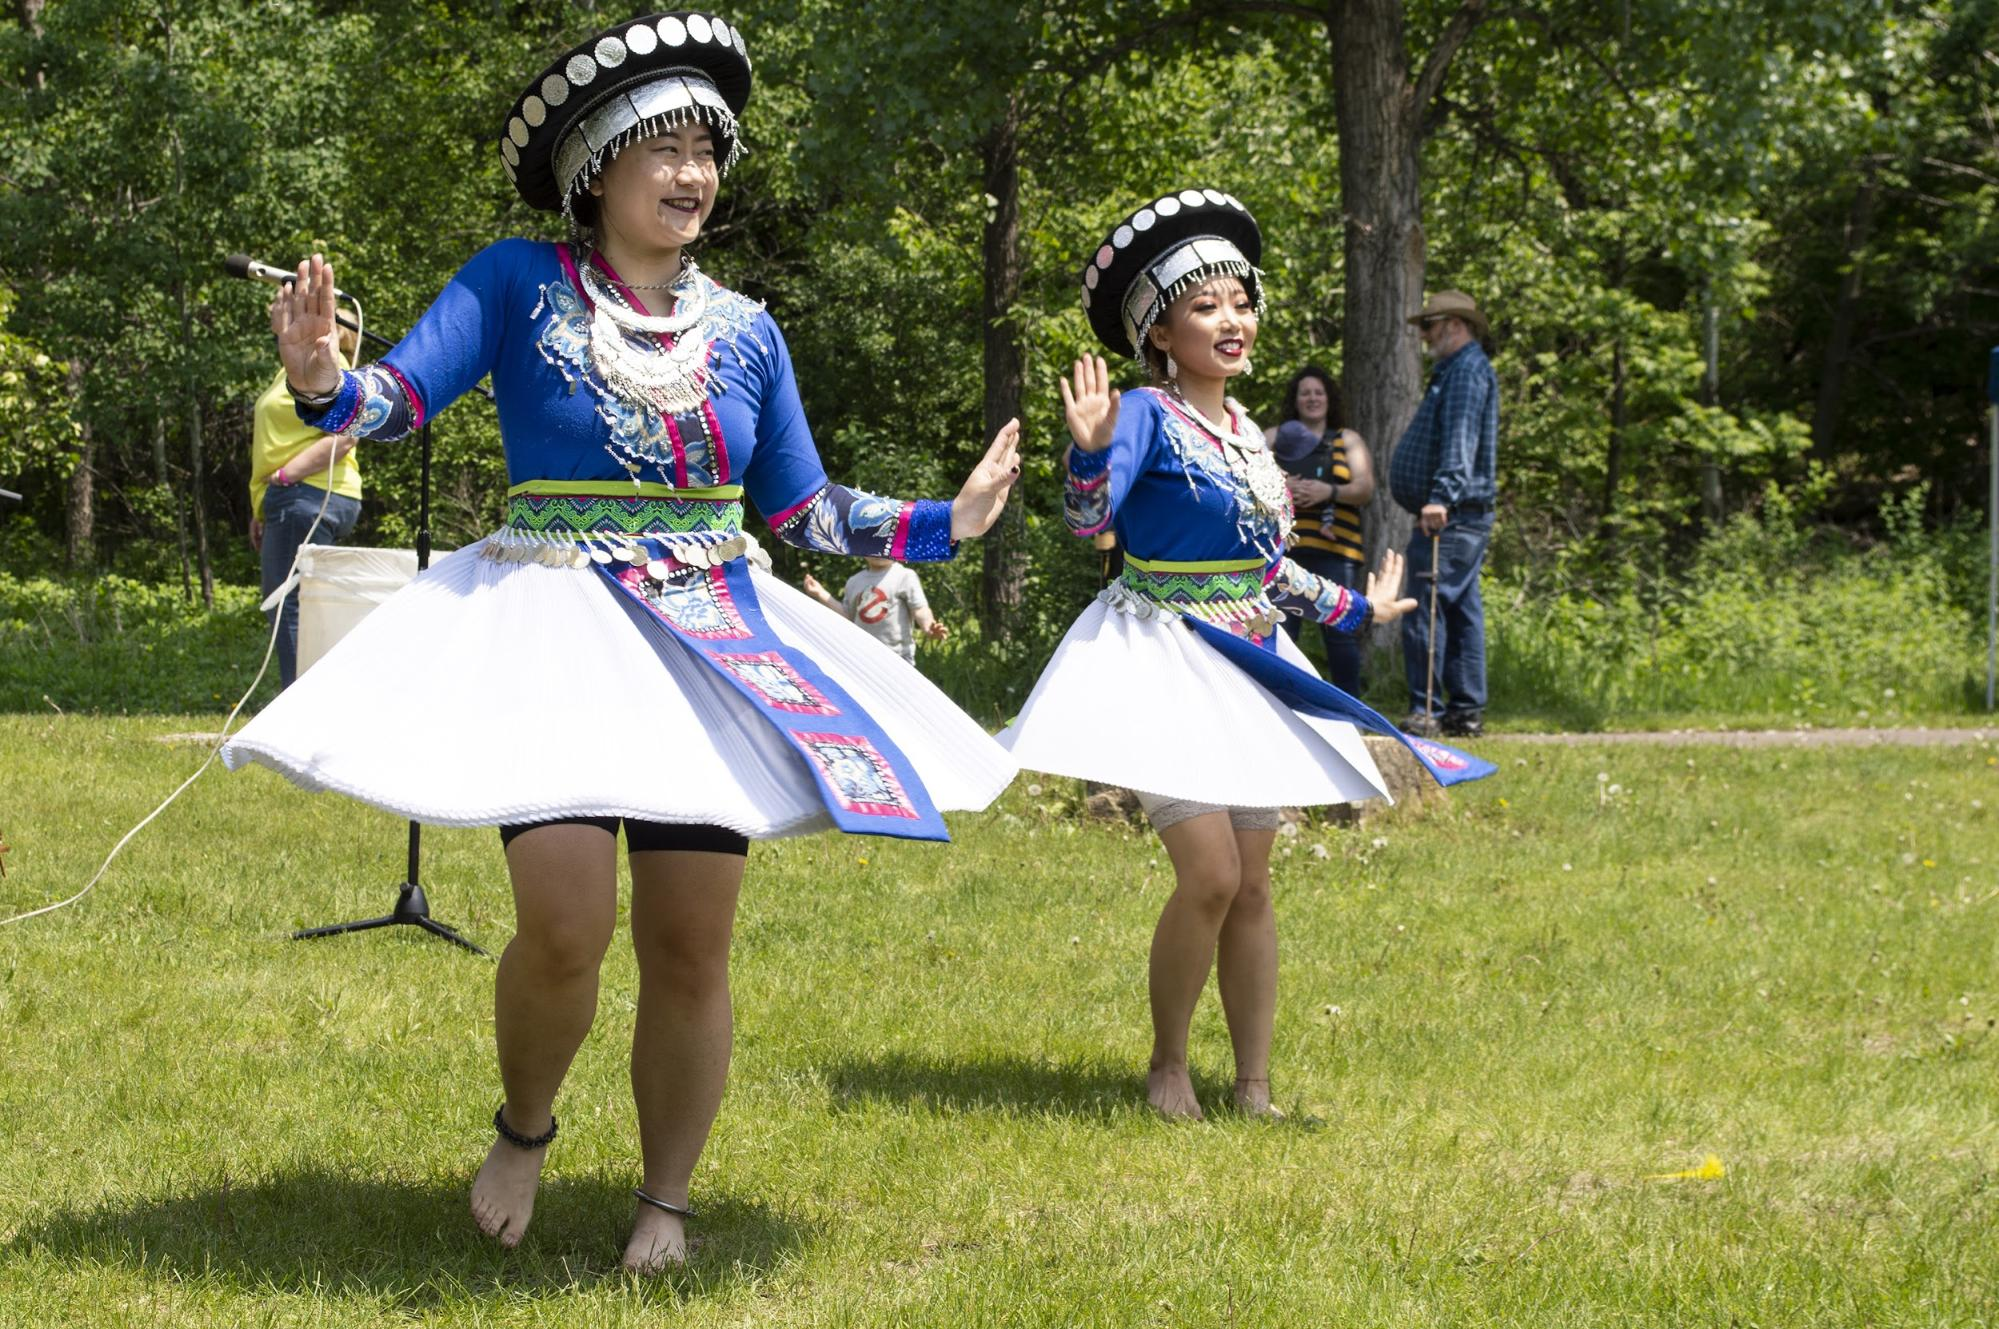 You Lee, left, and Nkauj Sheng dance in traditional Hmong style. They are co-founders of St. Paul's YeS Dance Academy. (Mandy Hathaway / The Metropolitan)